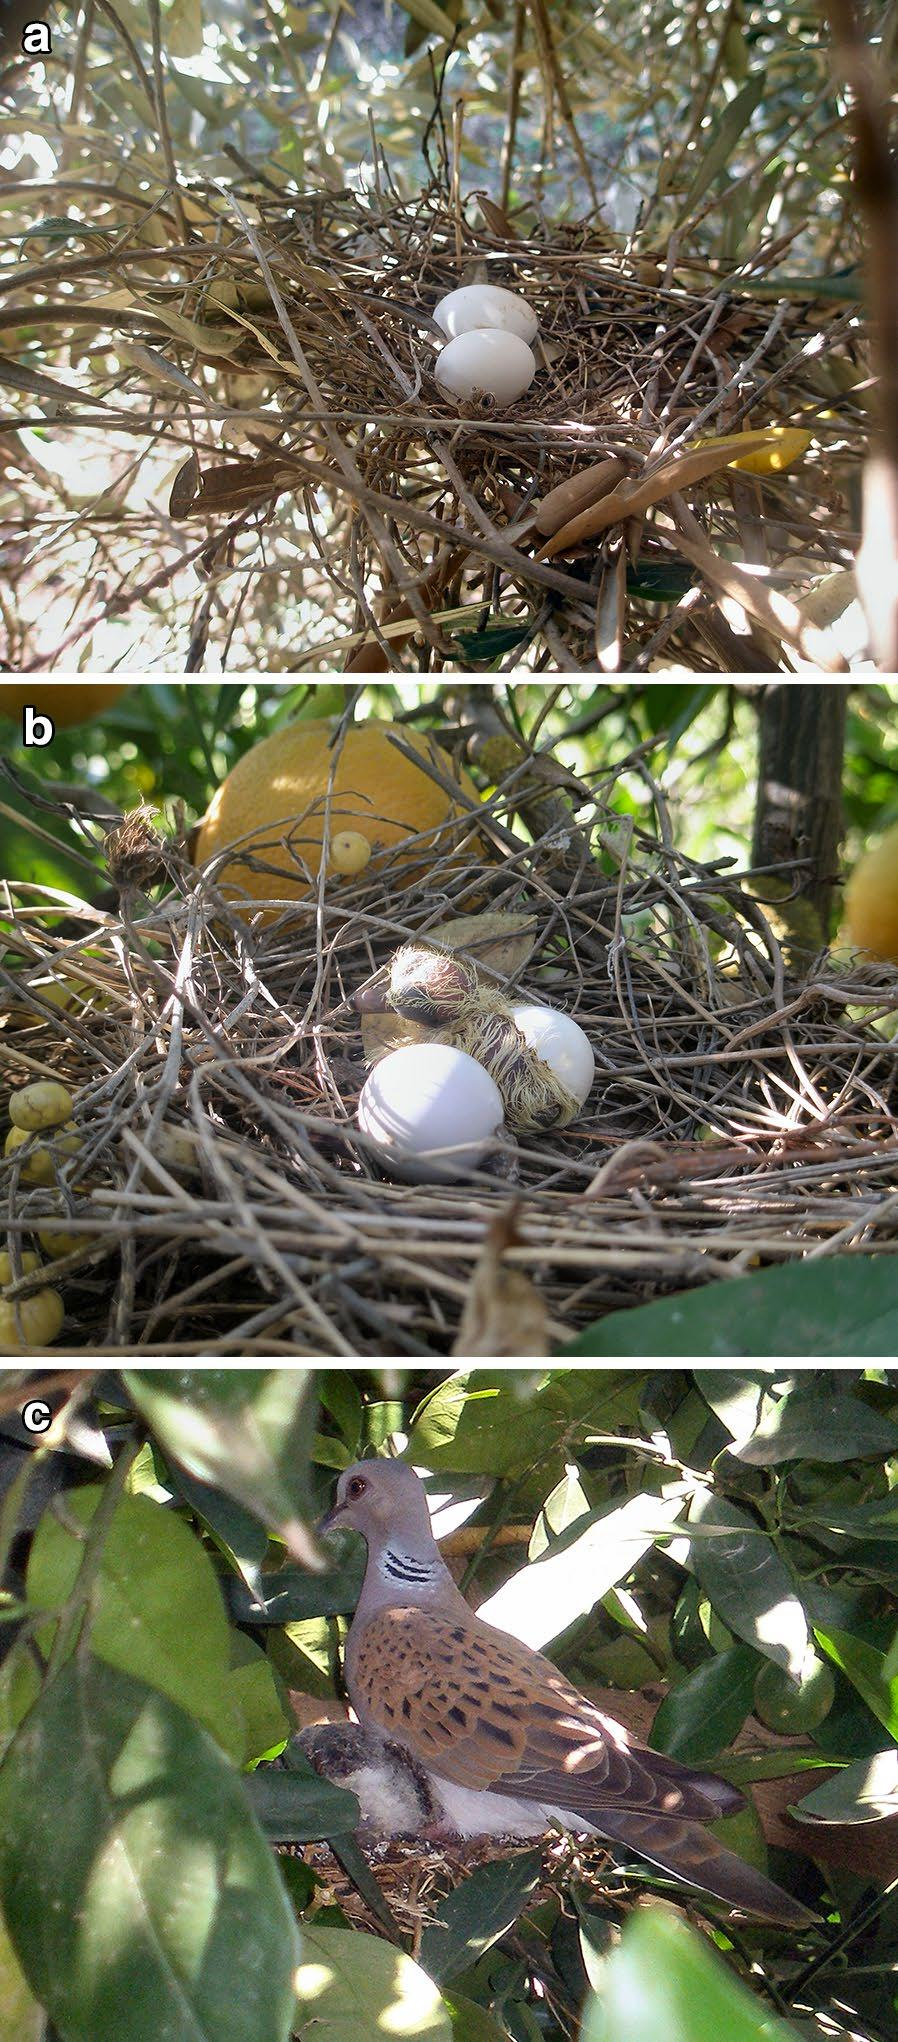 Page 5 of 11 Fig. 2 a A nest of a Turtle Dove with two eggs on an olive tree. b A nest of Turtle Dove with a newly hatched chick on an orange tree.